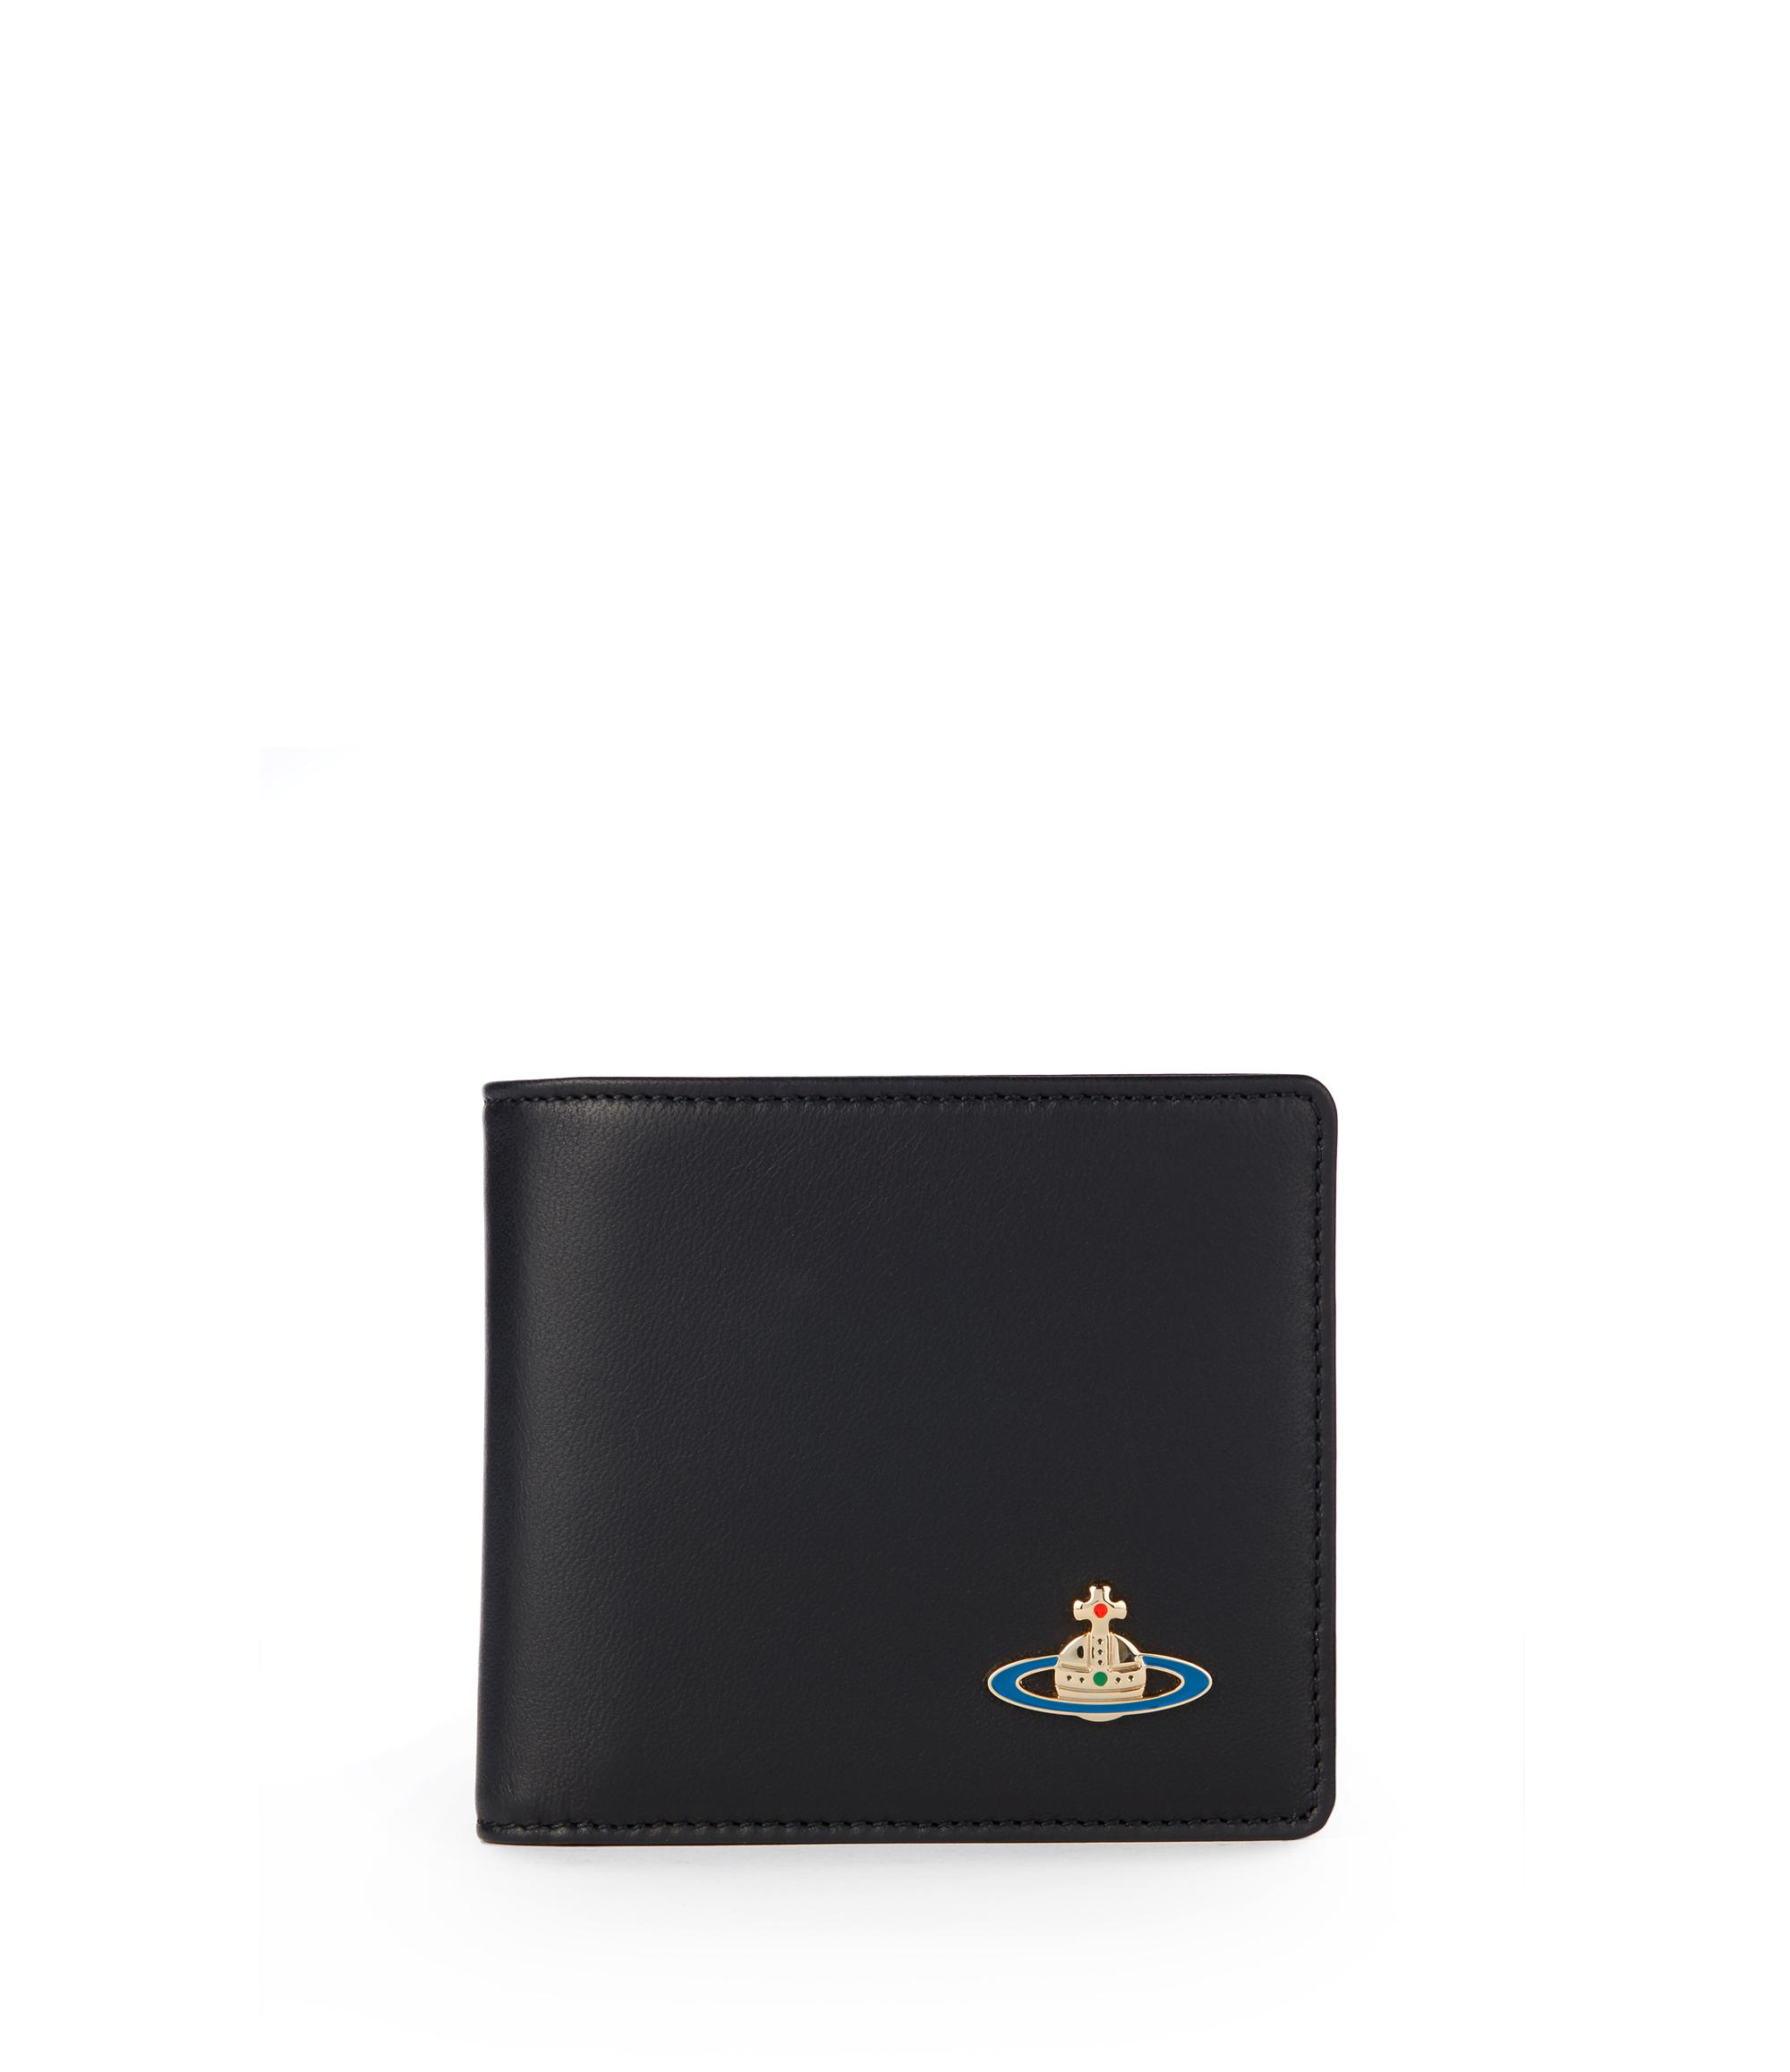 fe4e4c96aeb Vivienne Westwood Nappa Wallet With Coin Pocket 51010009 Black ...